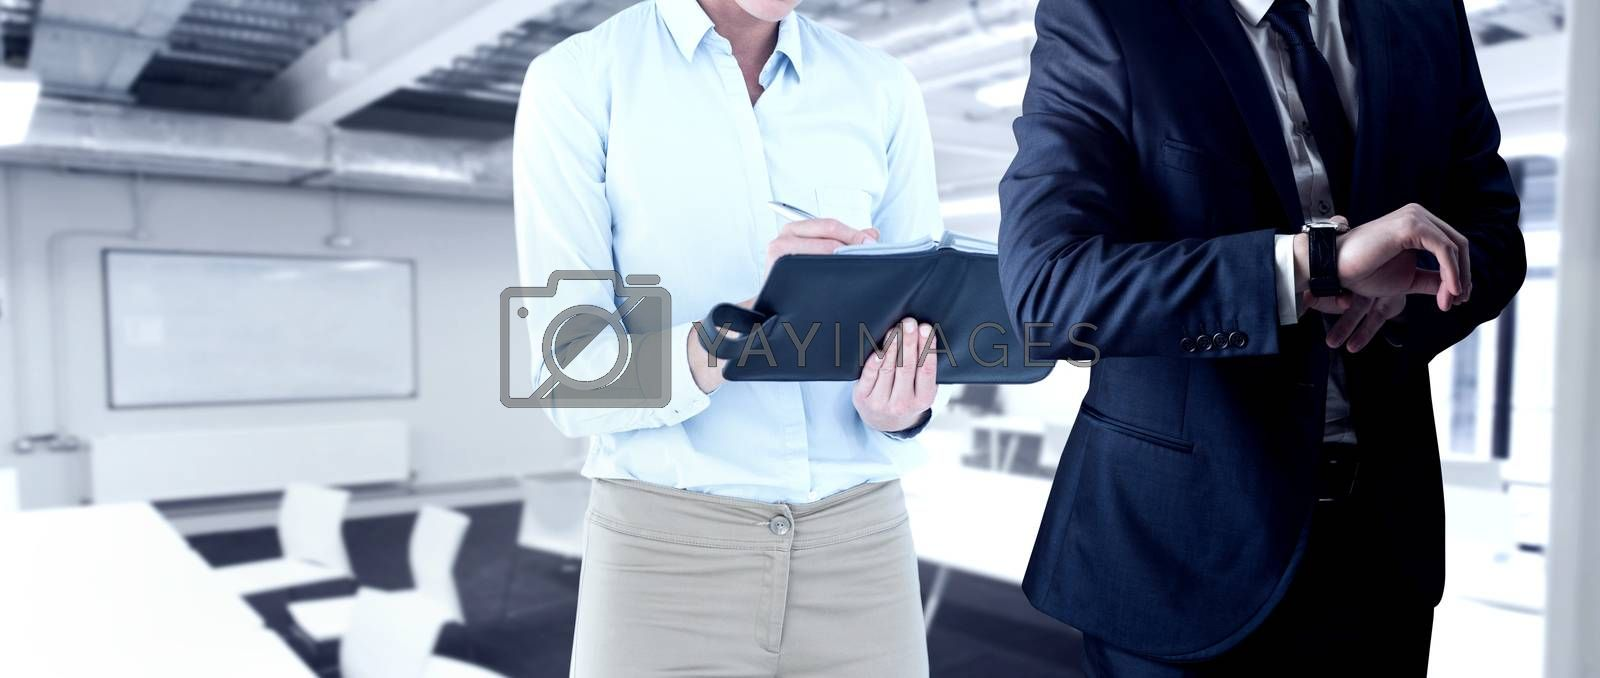 Handsome businessman checking the time against classroom